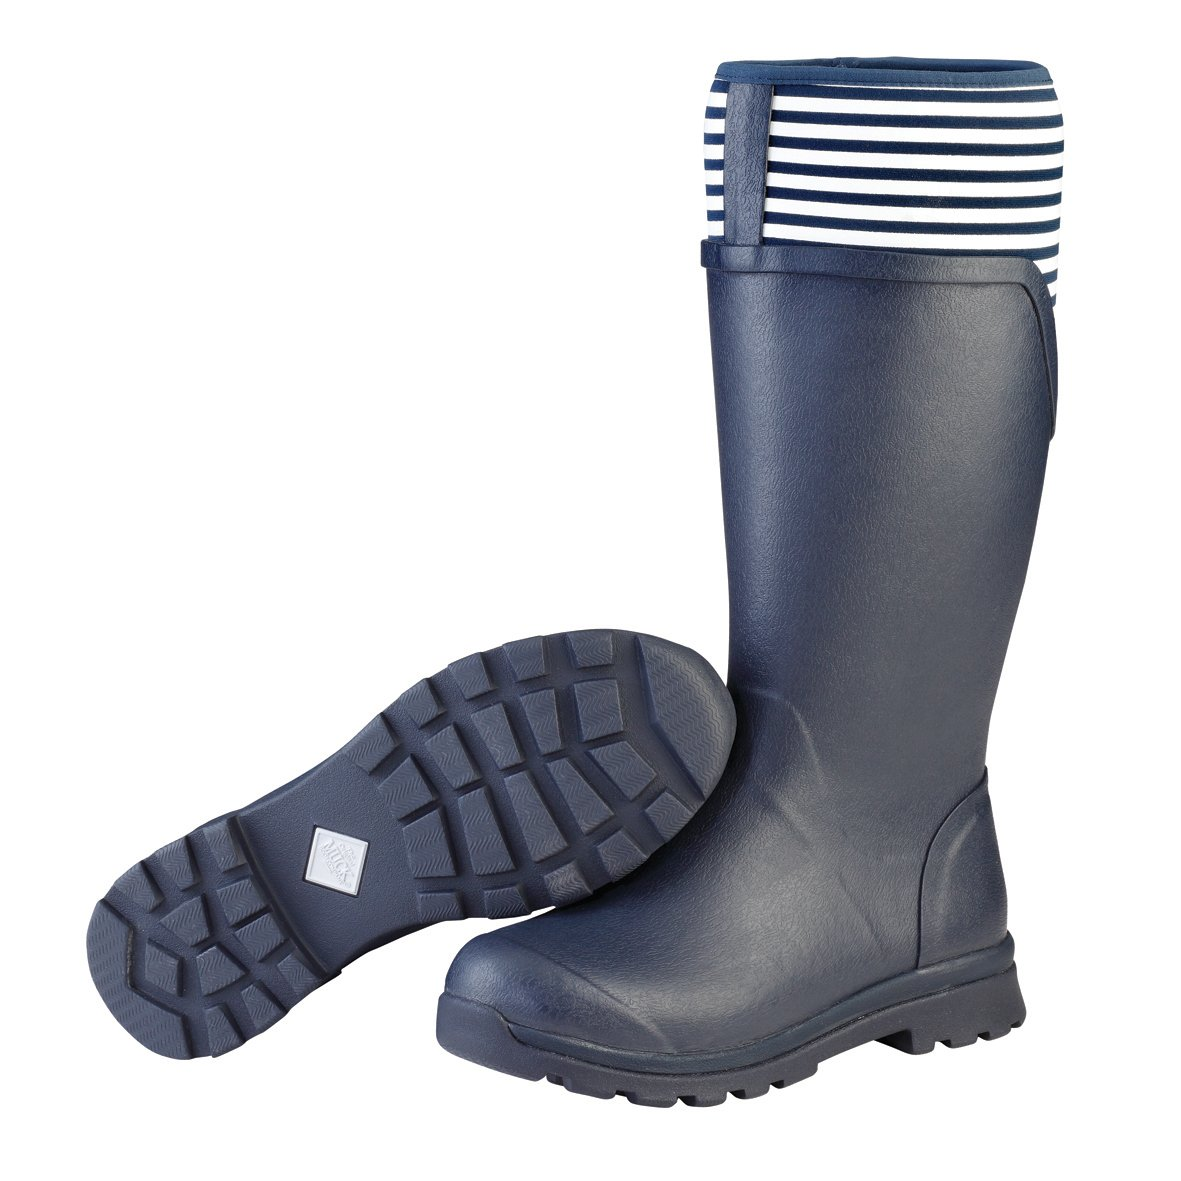 Muck Boot Women's Cambridge Tall Snow B01N116RIY 9 B(M) US|Navy With White Stripe